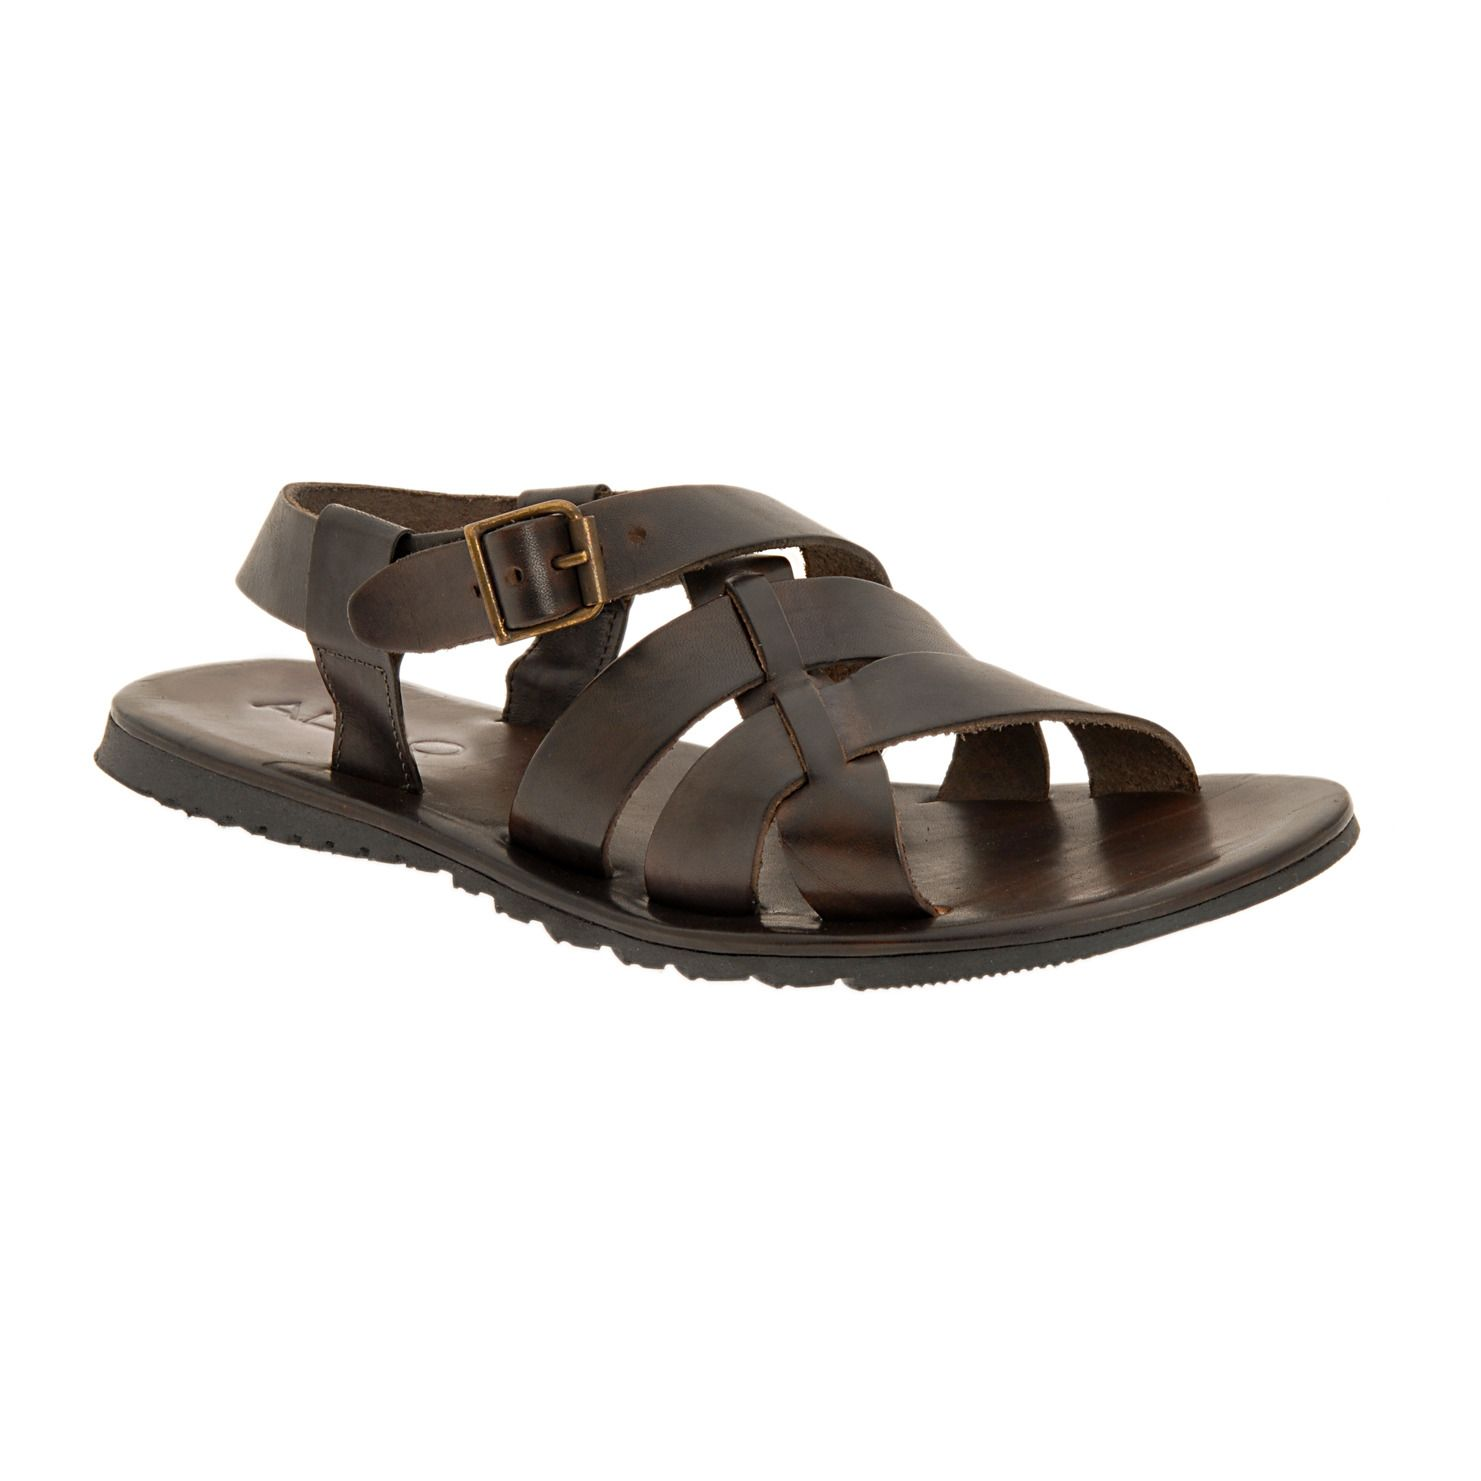 Stylish Sandals For Men Fashion Join